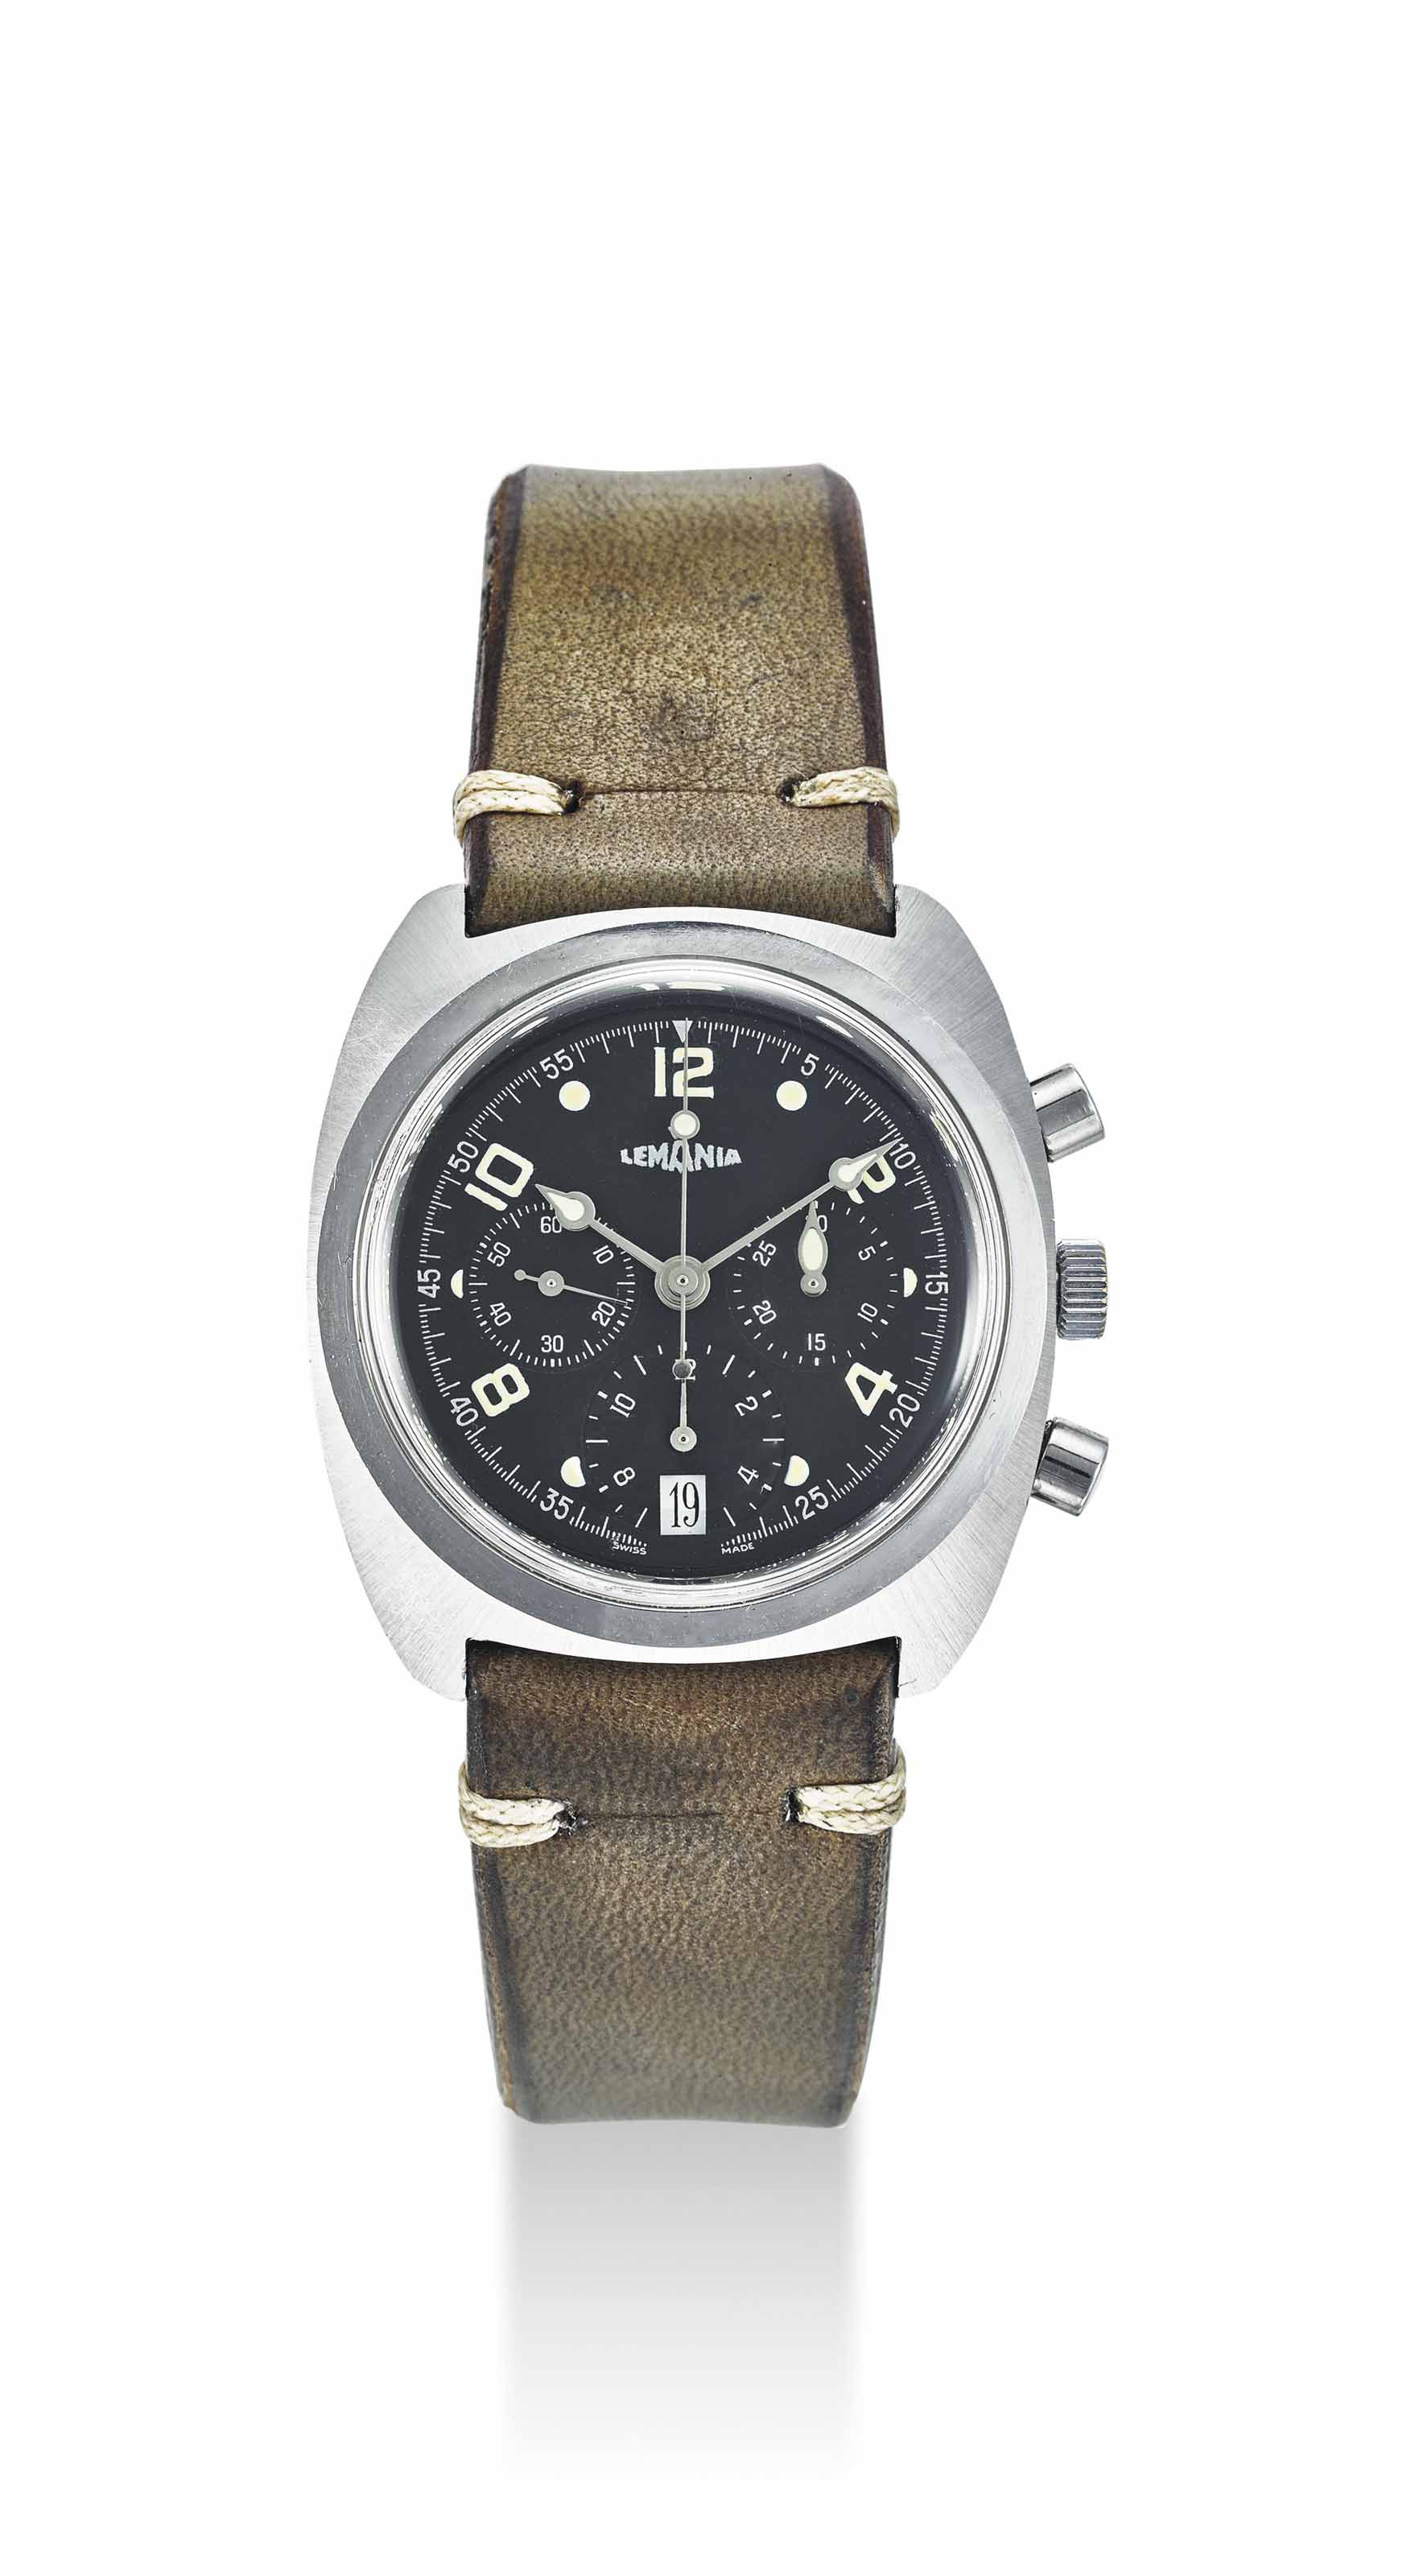 LEMANIA. A RARE STAINLESS STEEL AUTOMATIC CHRONOGRAPH PROTOTYPE WRISTWATCH WITH DATE